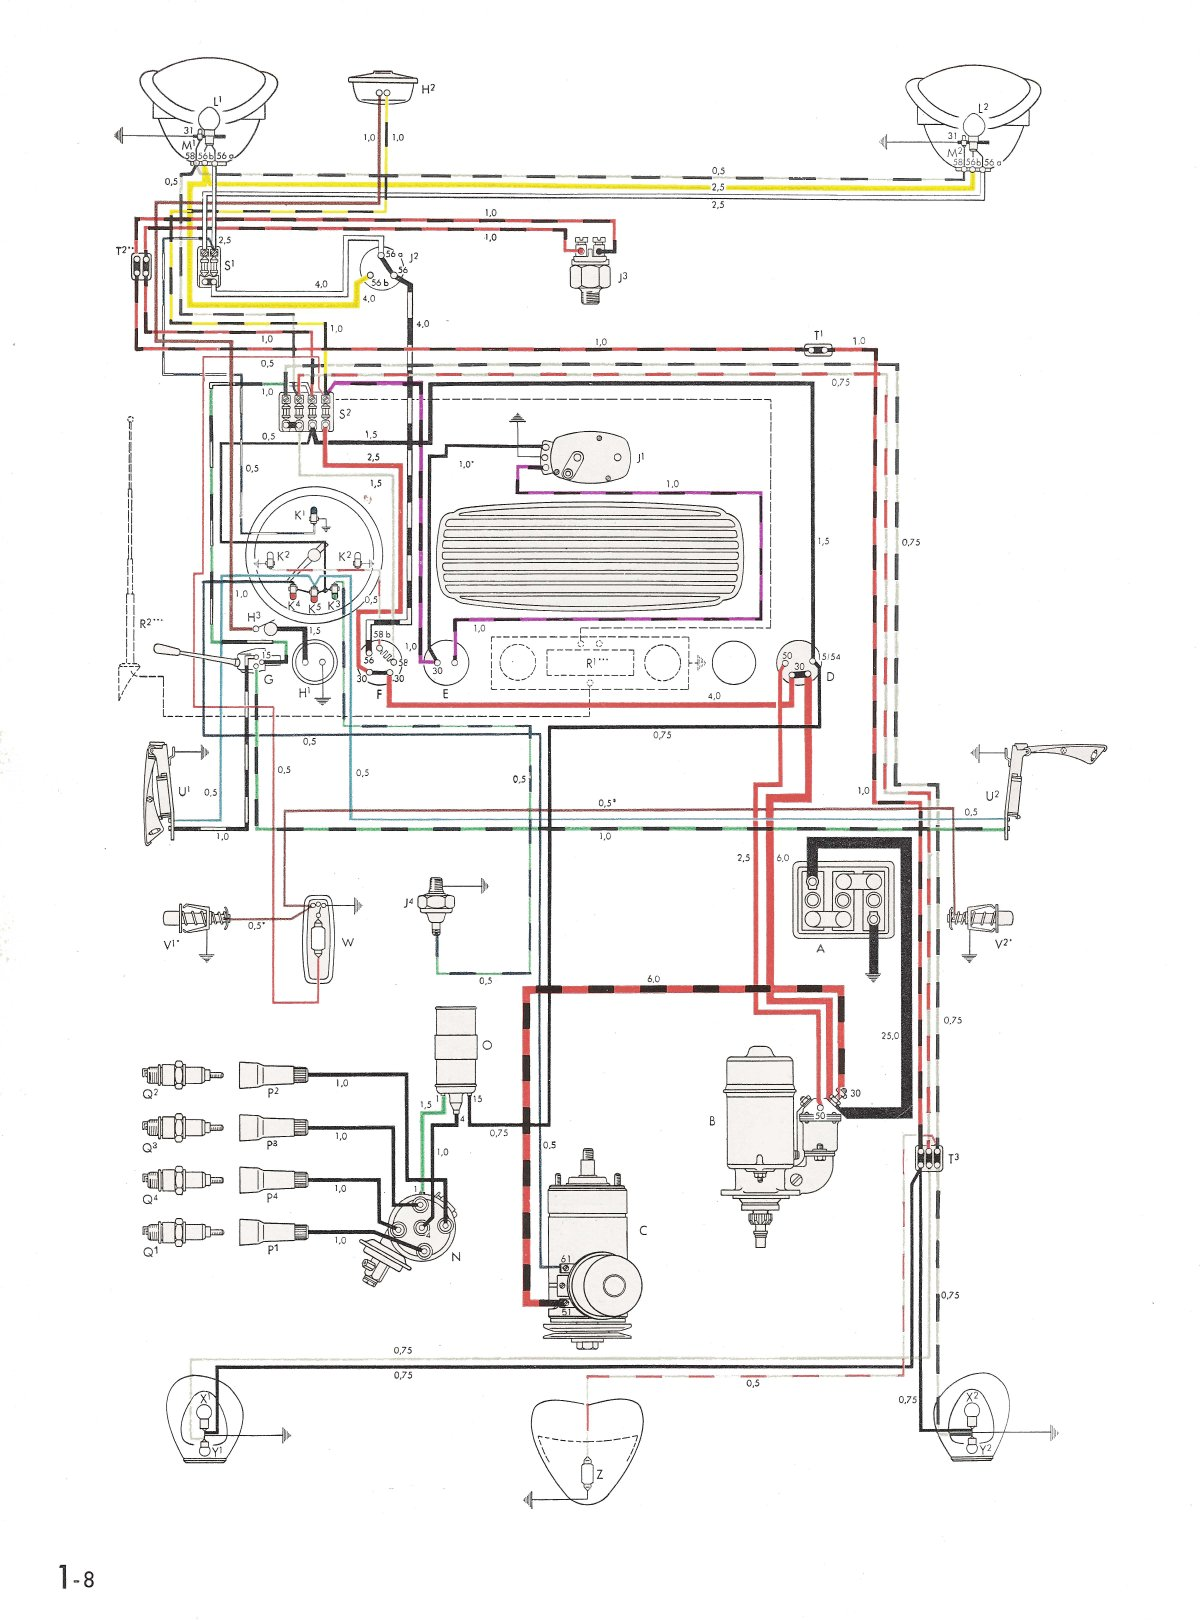 bug54 thesamba com type 1 wiring diagrams 1971 volkswagen super beetle wiring diagram at panicattacktreatment.co